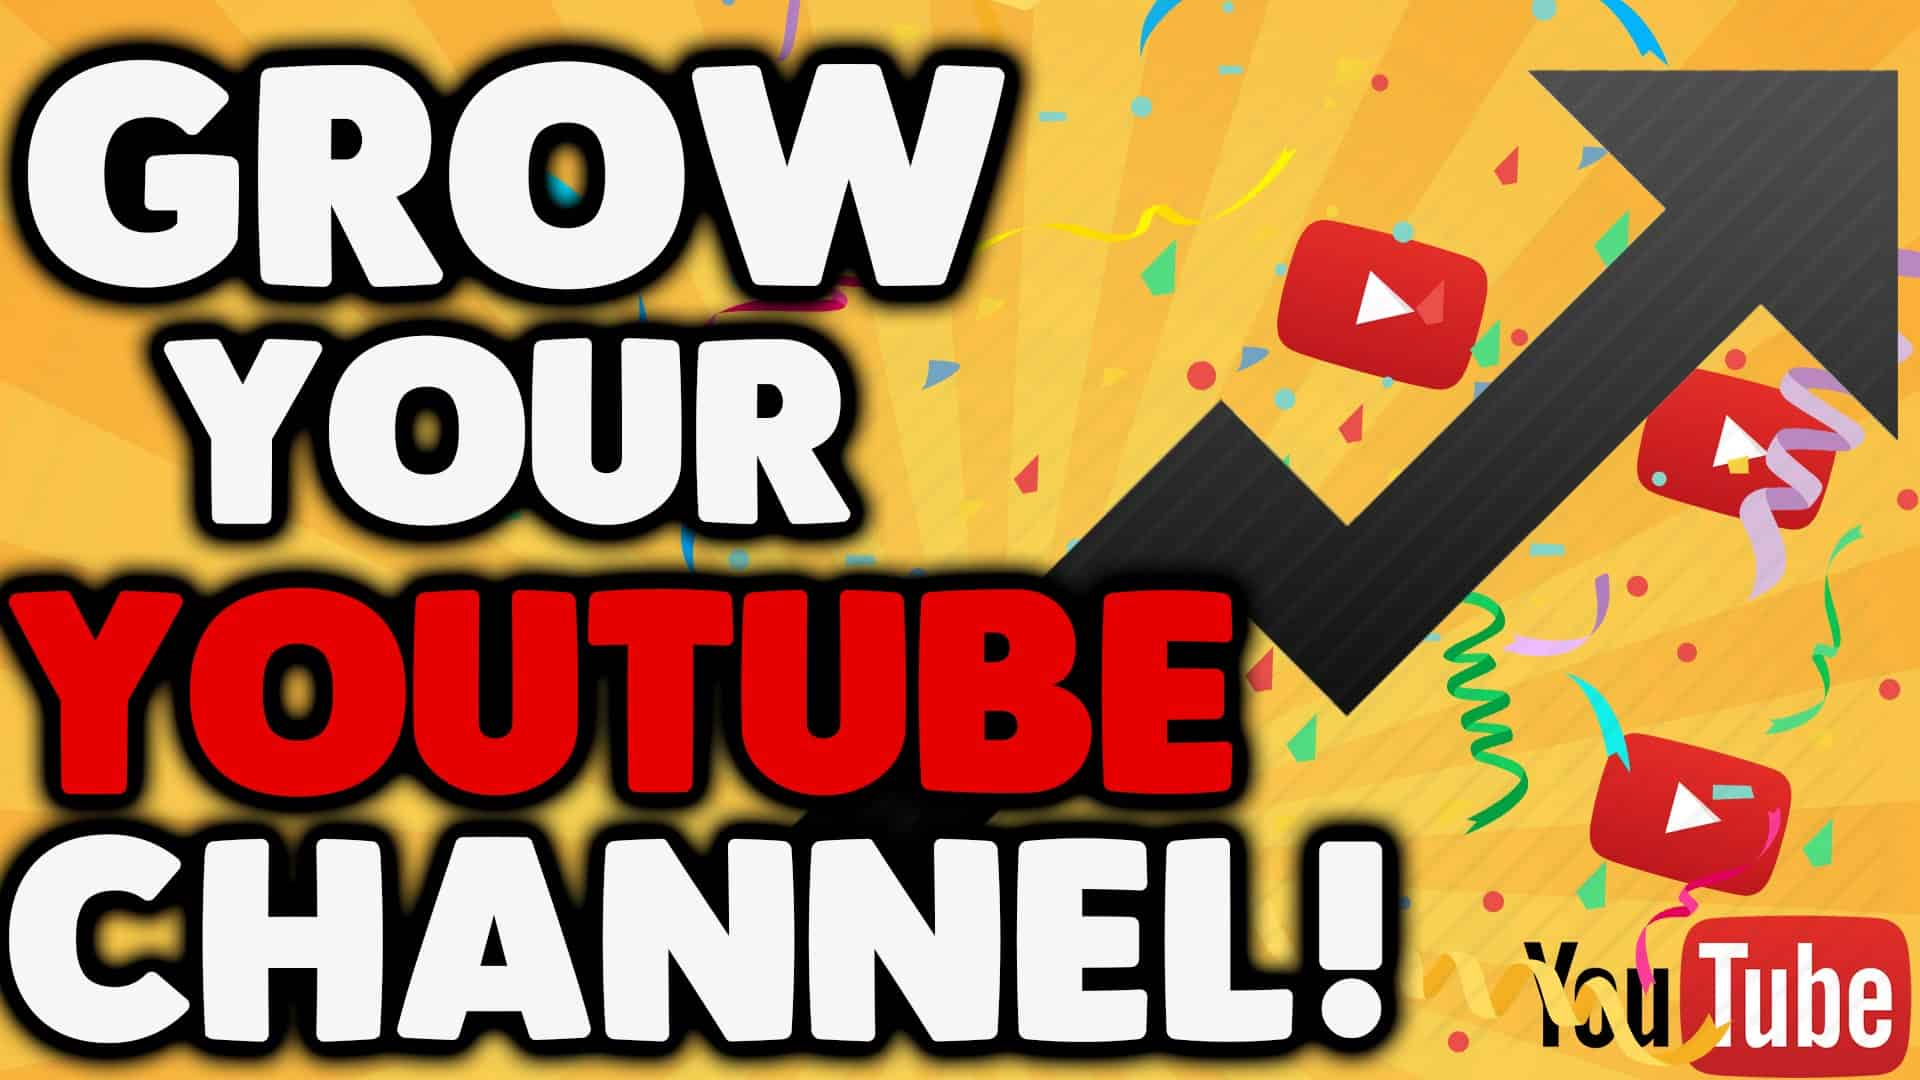 9 Steps To Grow Your YouTube Channel 10x 1